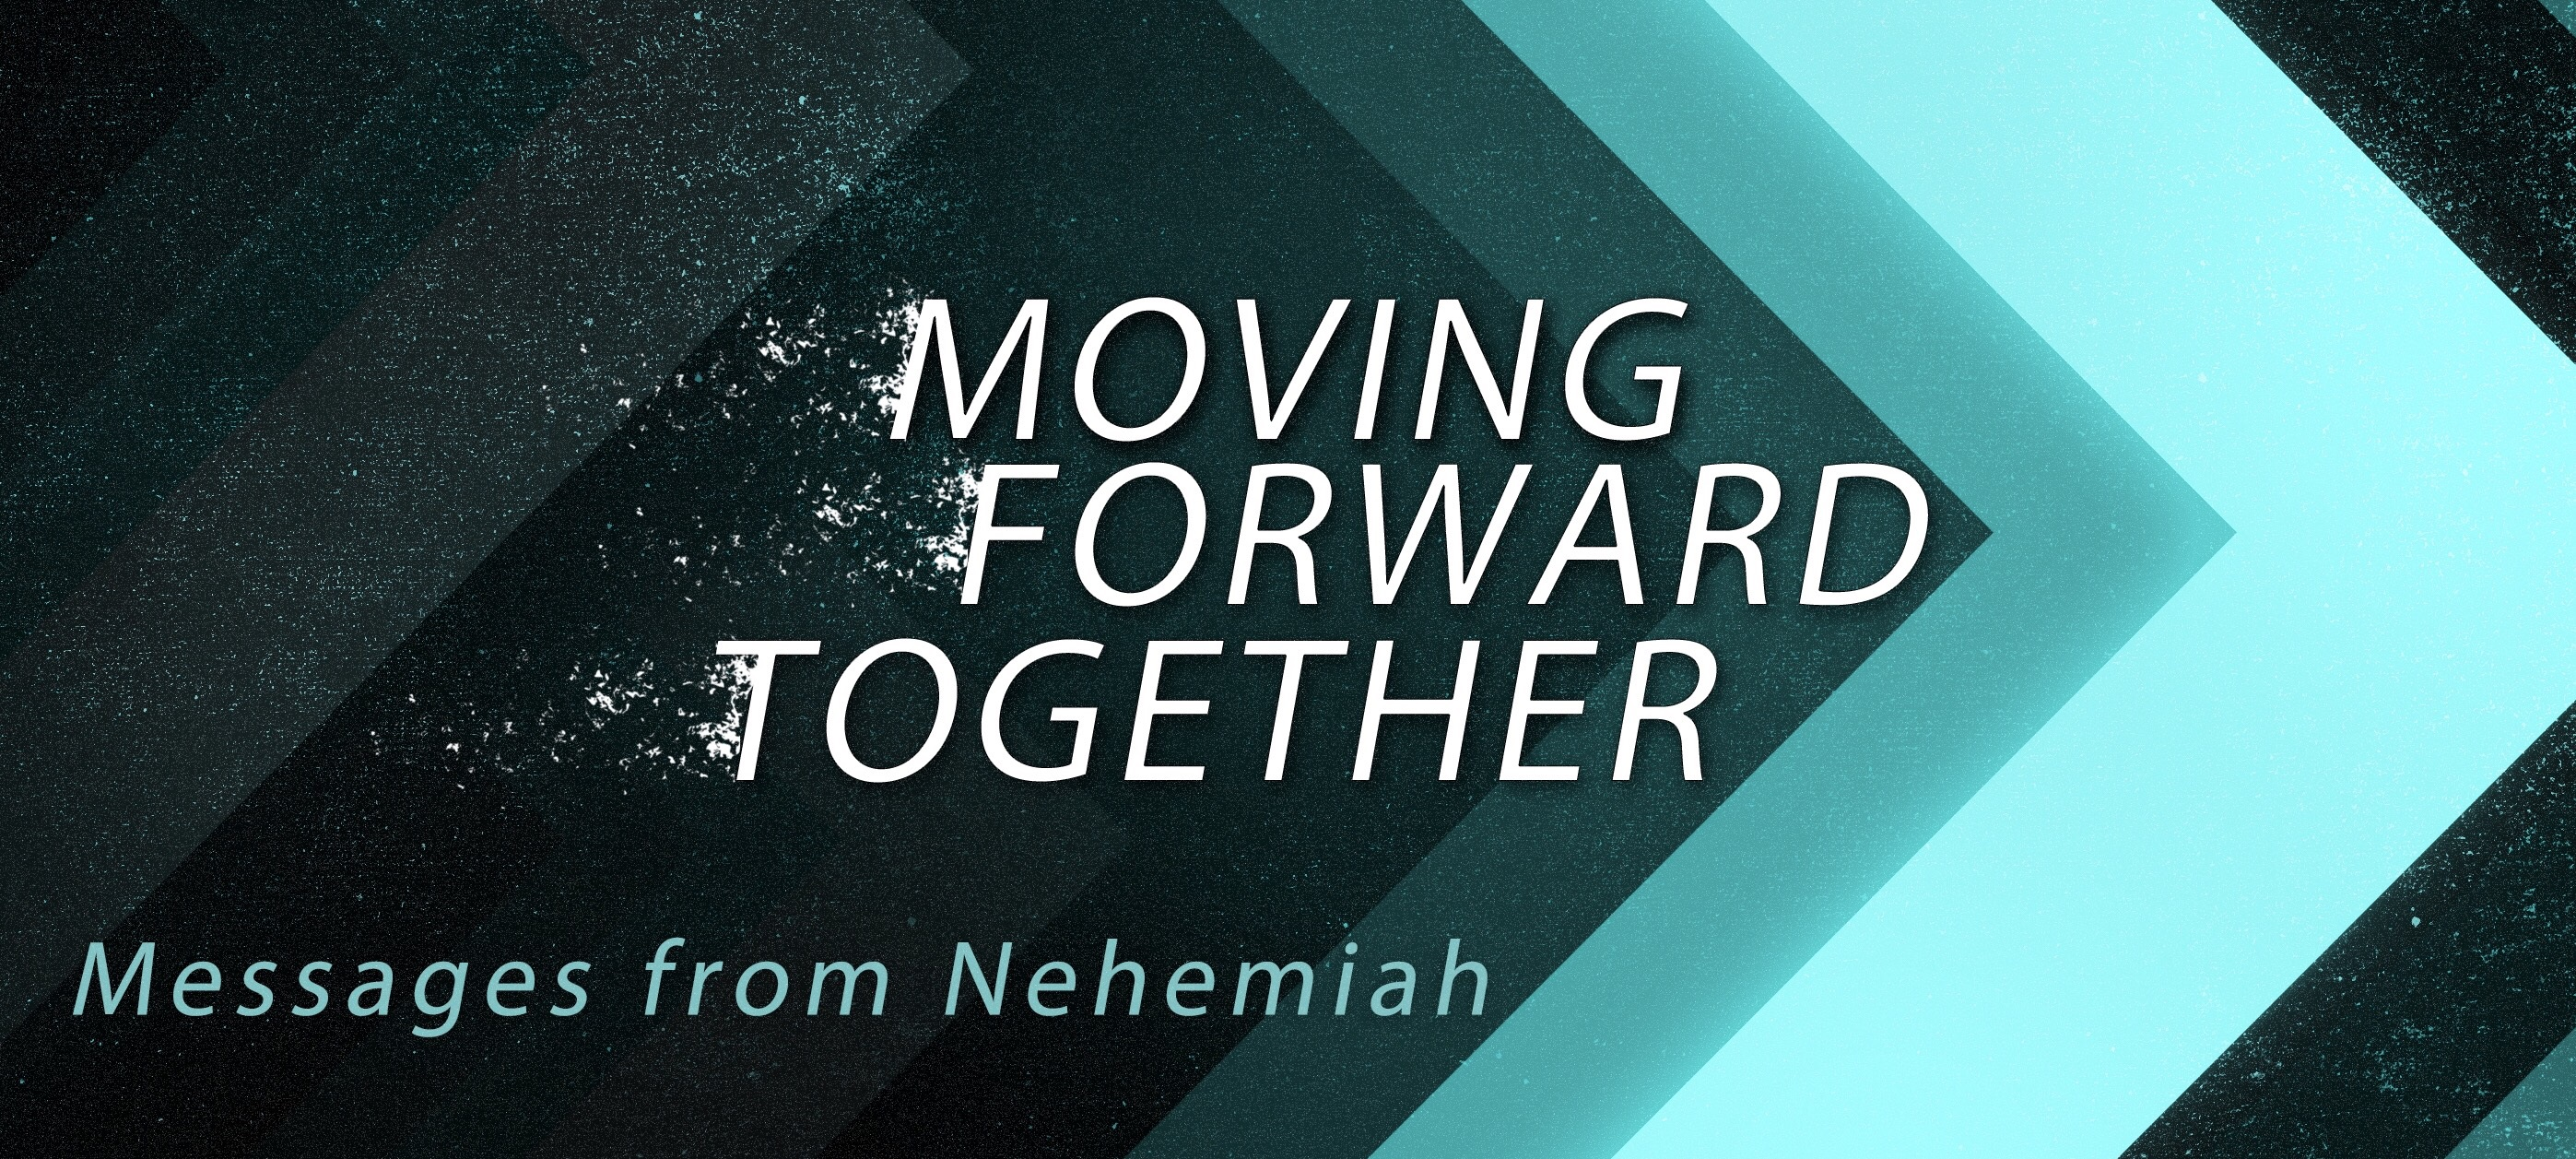 Moving Forward Together: Nehemiah